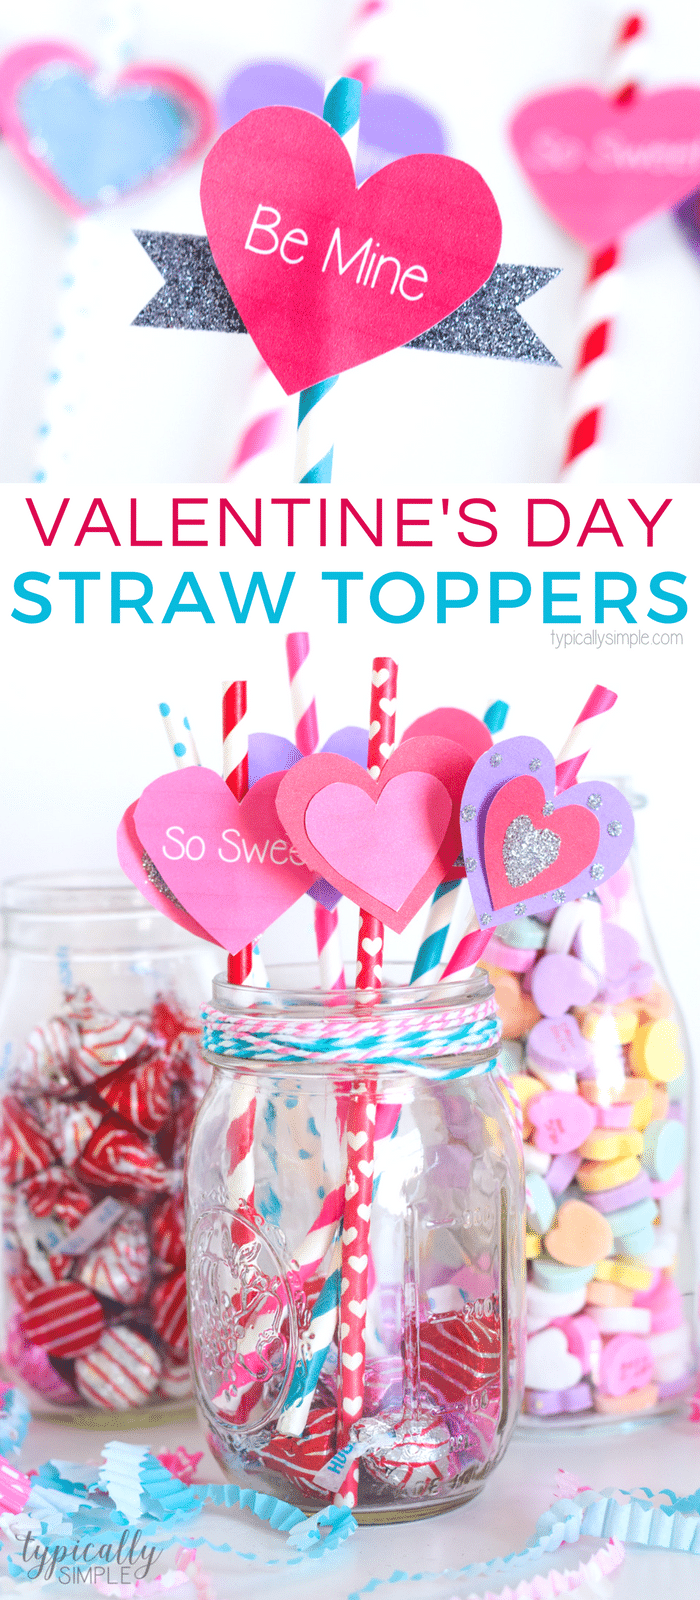 These straws toppers are a super cute and easy Valentine's Day craft project! Use them for table decor, drinks, cupcake toppers, or just a fun craft for the kids to make using the free Valentine's Day printable!